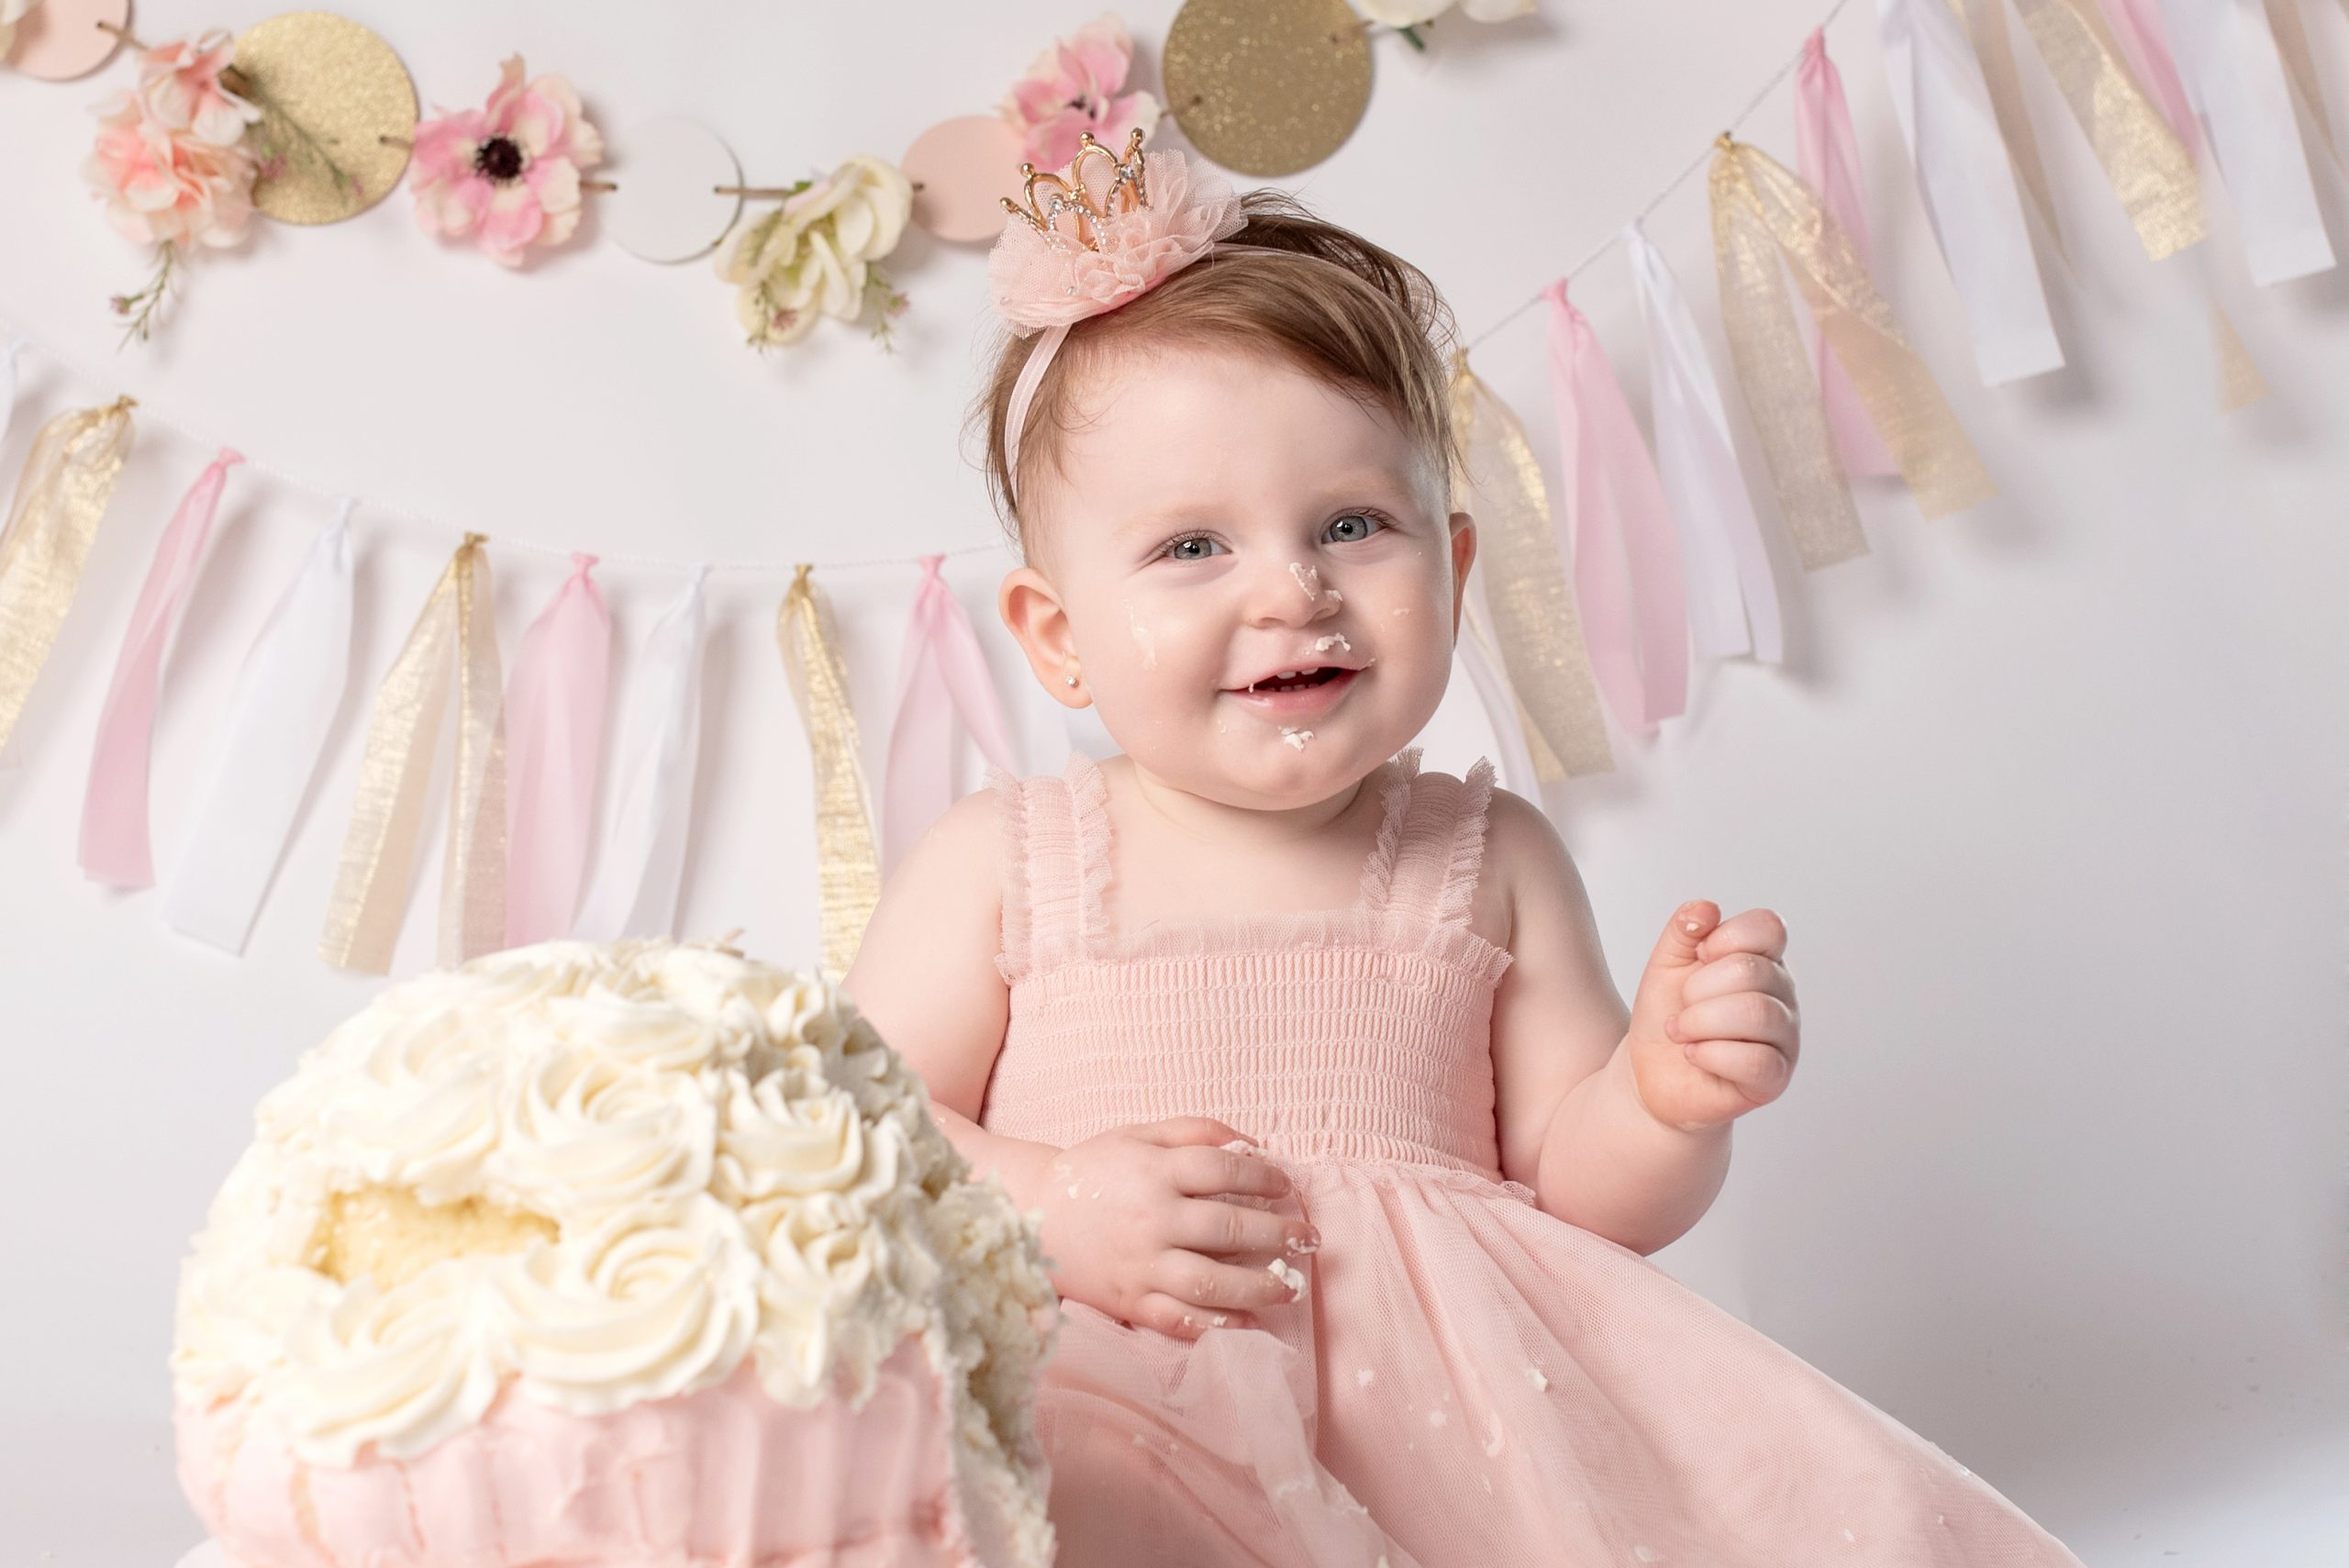 Cake Smash photography at one year old